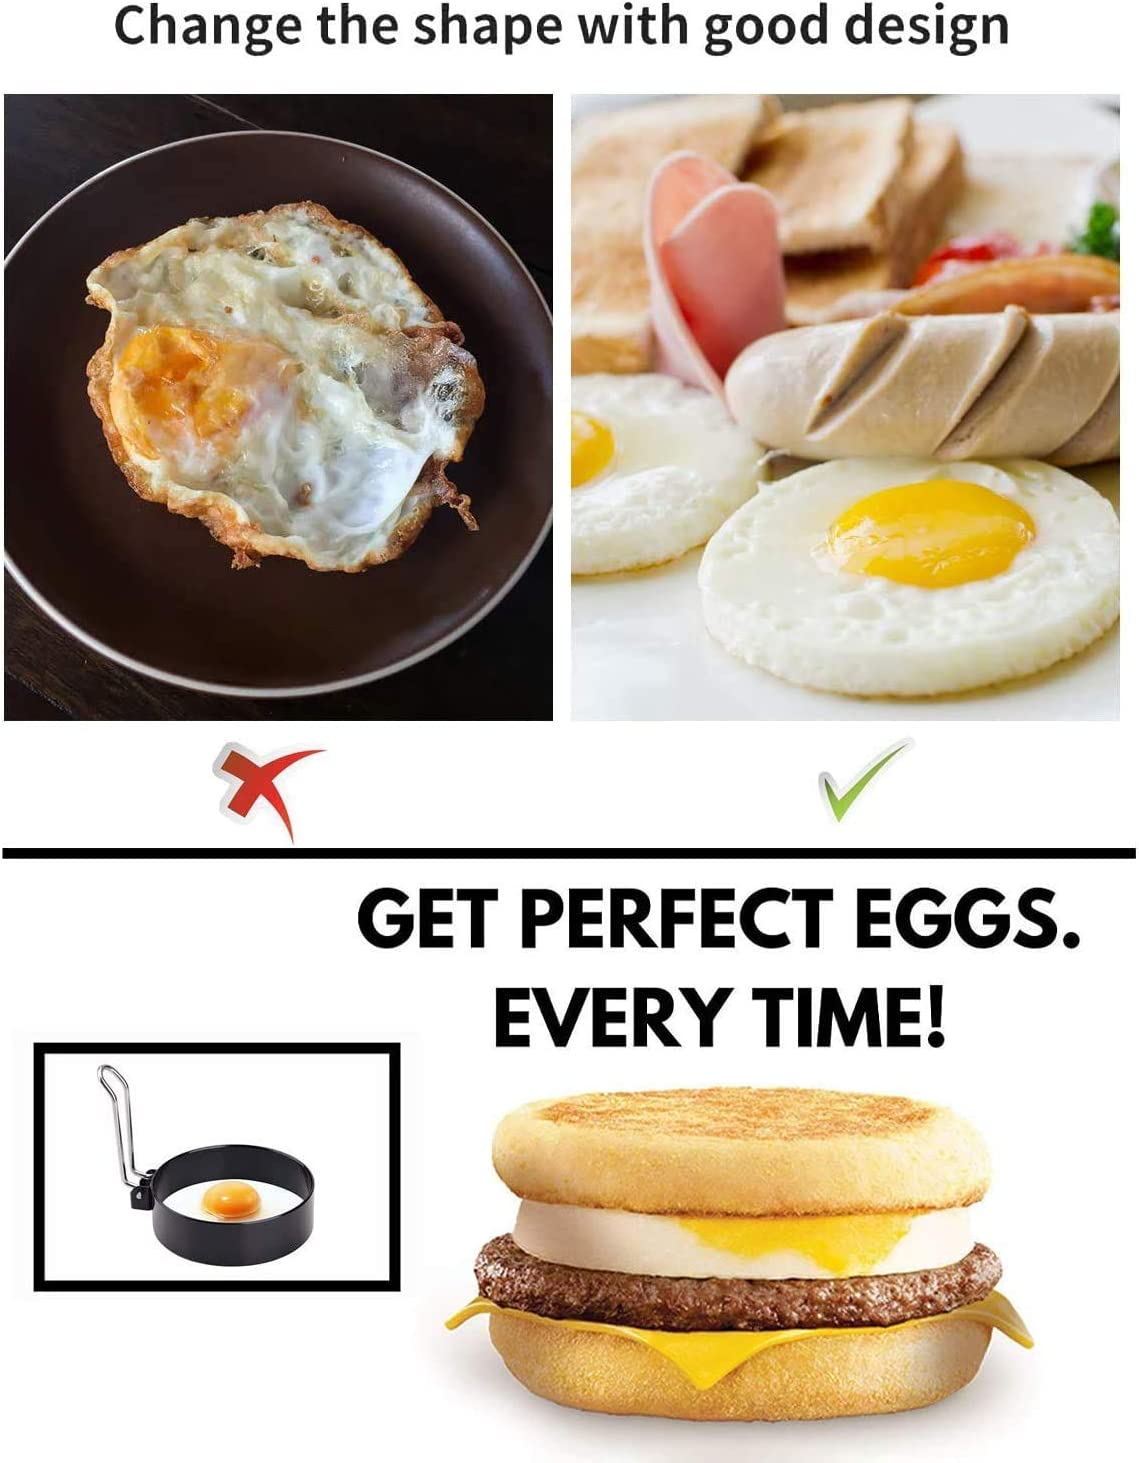 Egg Cooker Rings For Cooking FLAIGO Egg Rings for Egg Mcmuffins Pancake Mold Egg Mold Stainless Steel Non-Stick Fried Egg Ring Set For Shaping Eggs Kitchen Cooking Tool A